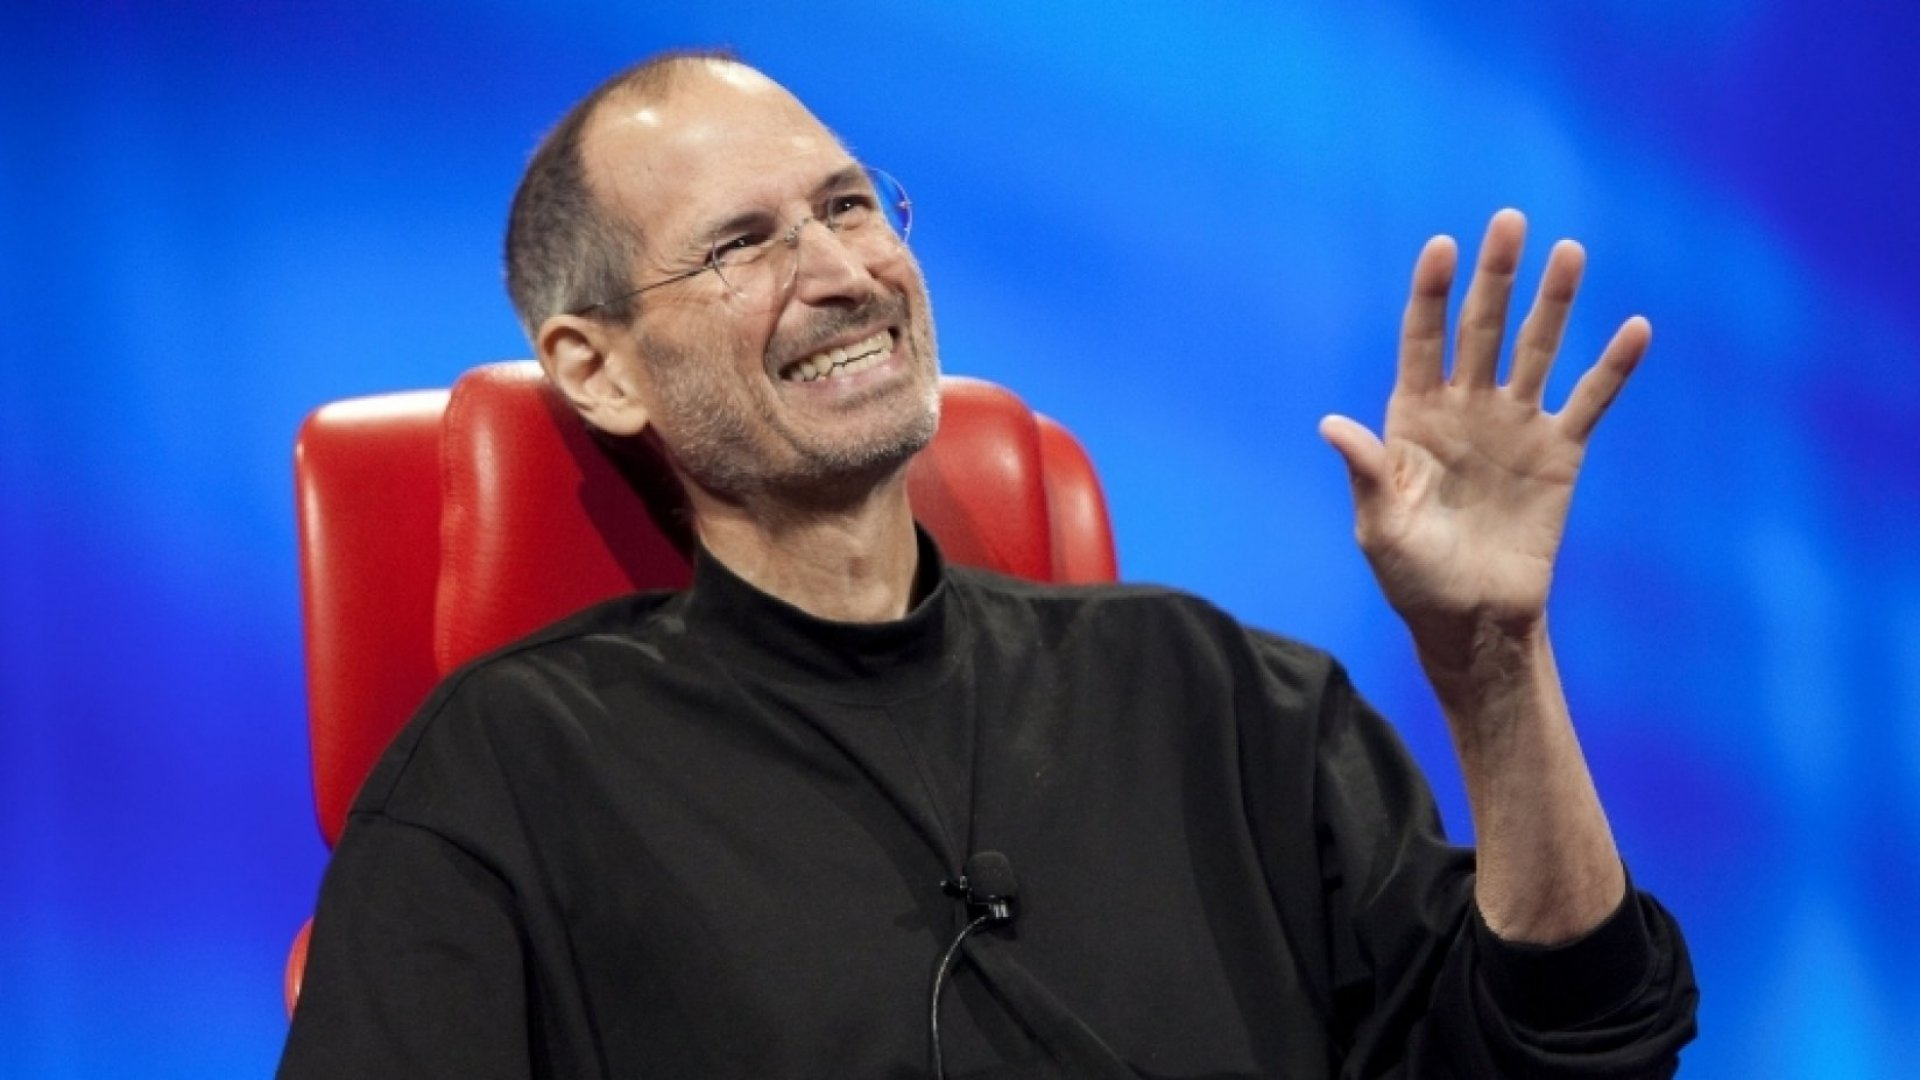 The Strange Eating Habits of 5 Ridiculously Successful People